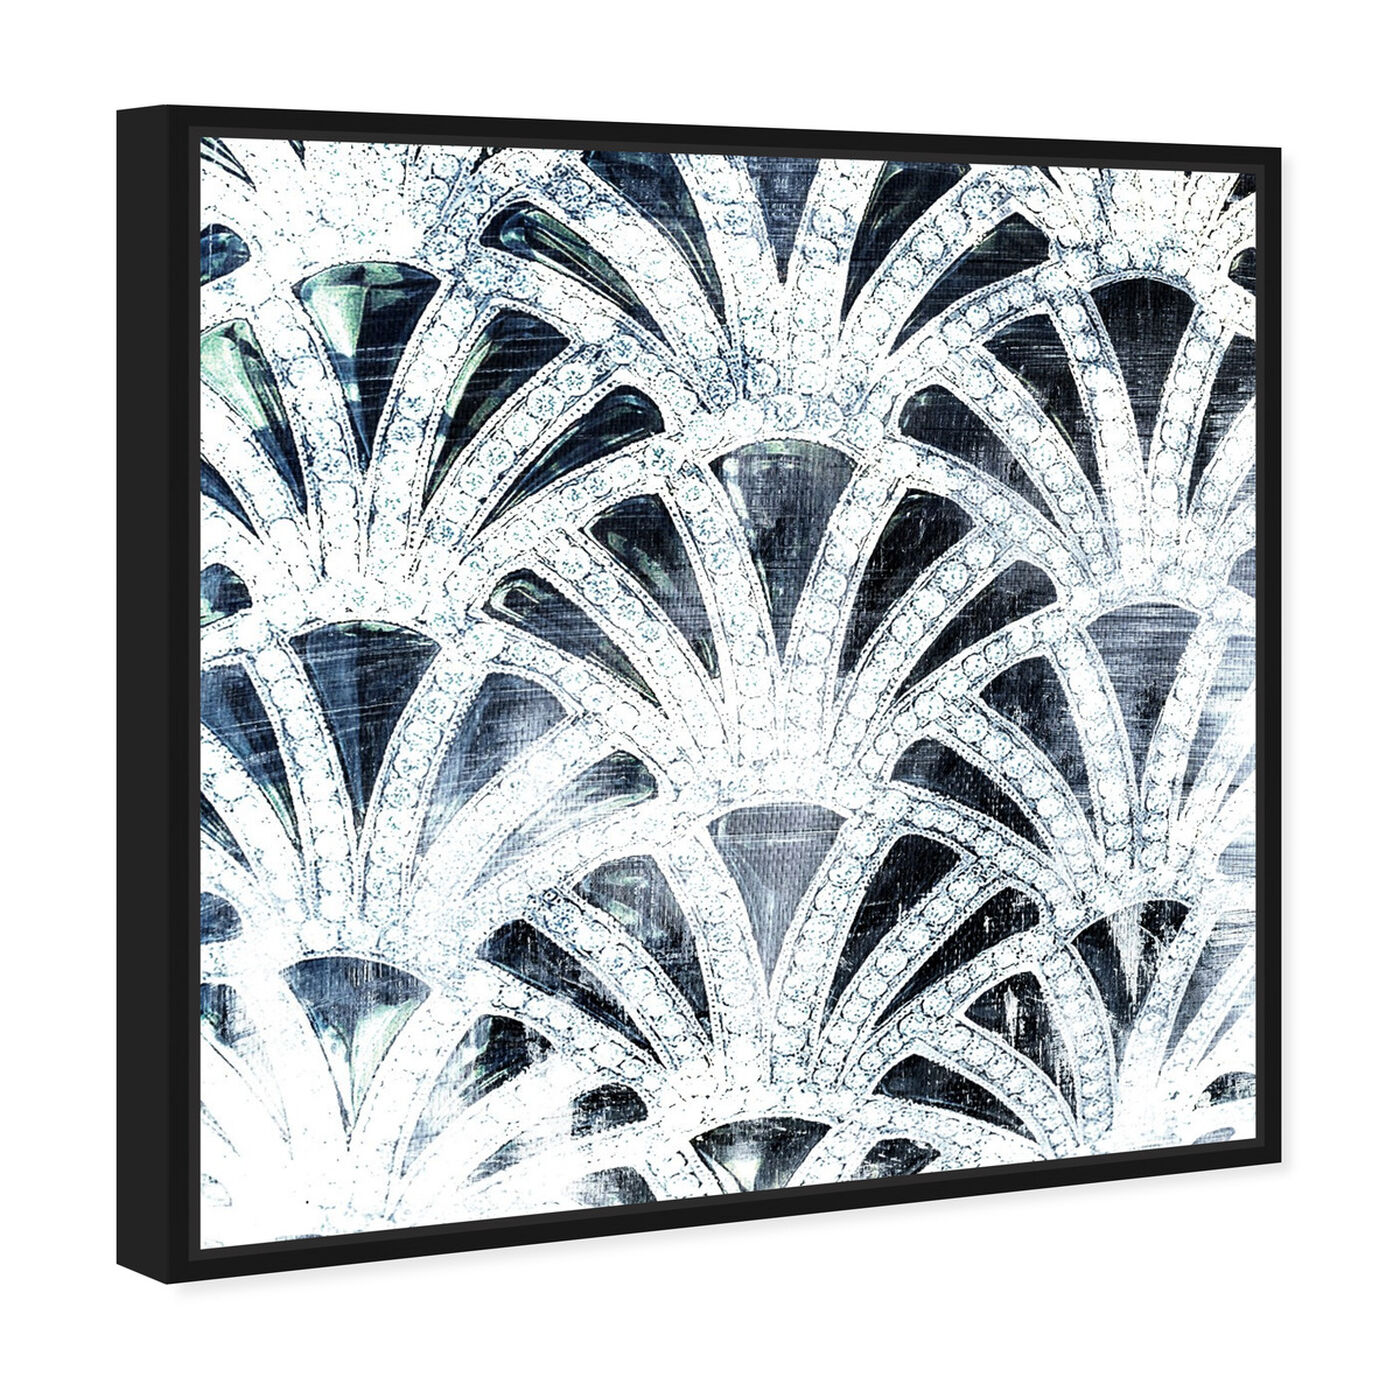 Angled view of Diamonds Deco featuring abstract and patterns art.